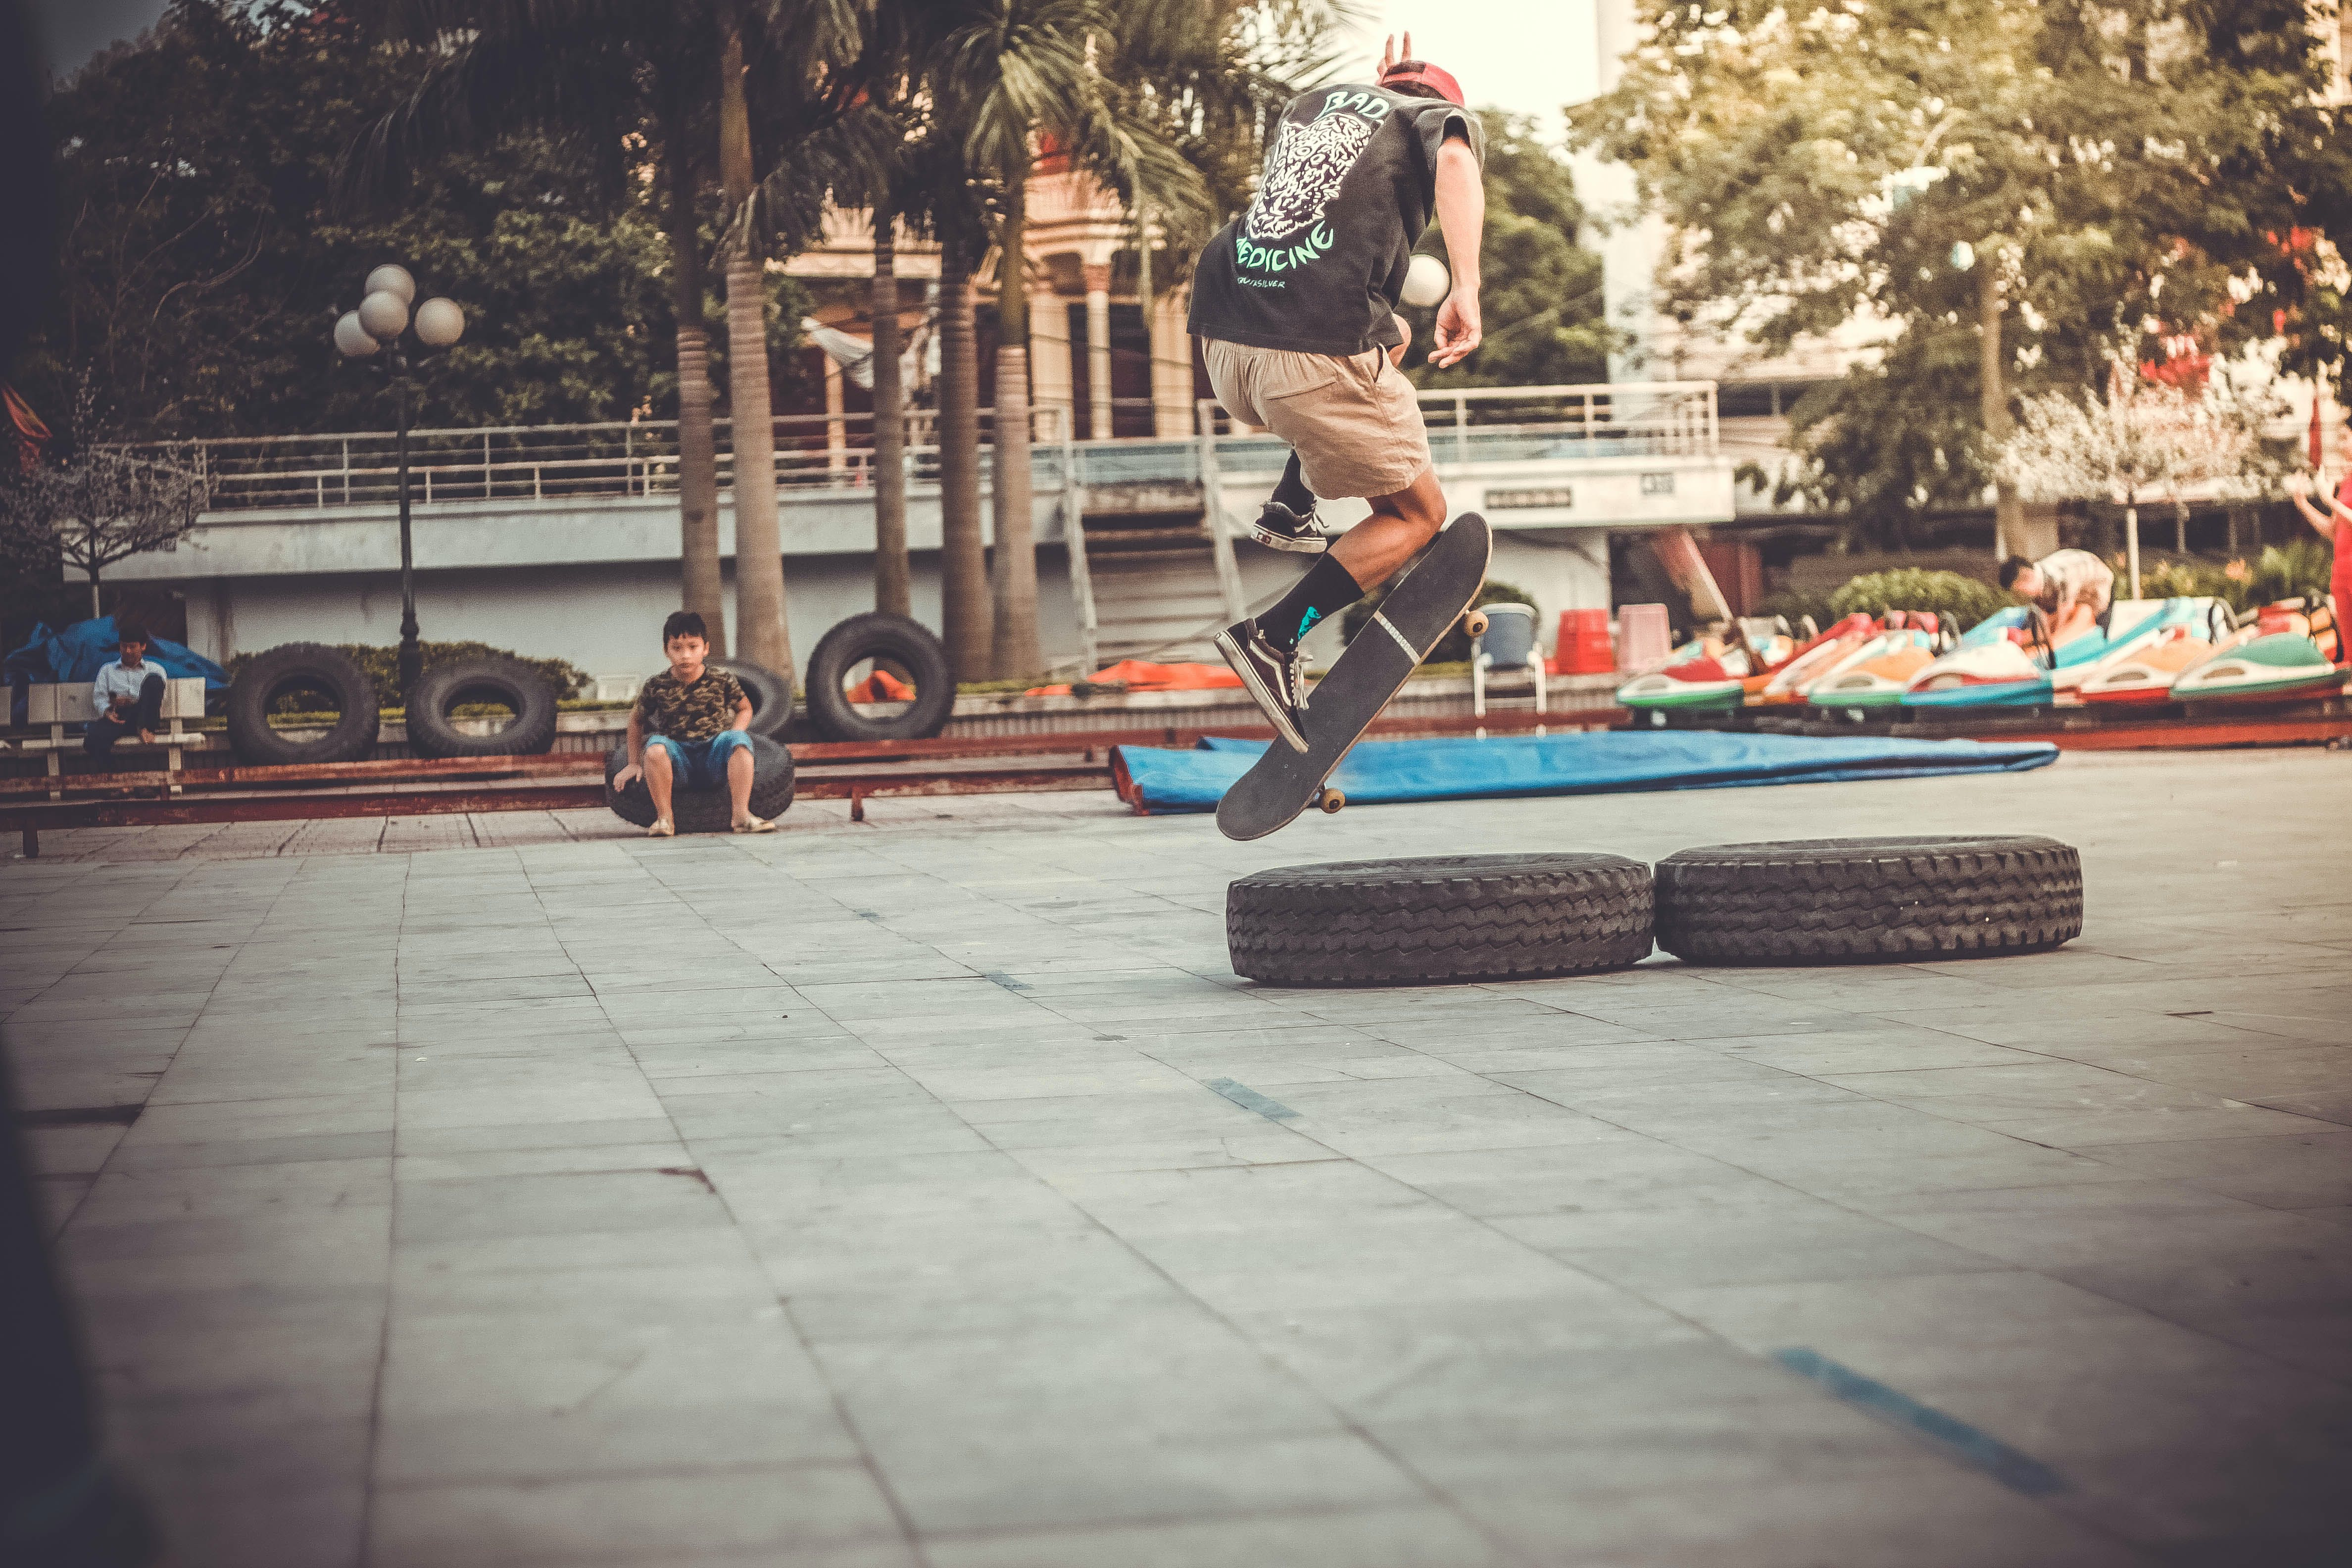 Man Playing Skateboard on Skate Park